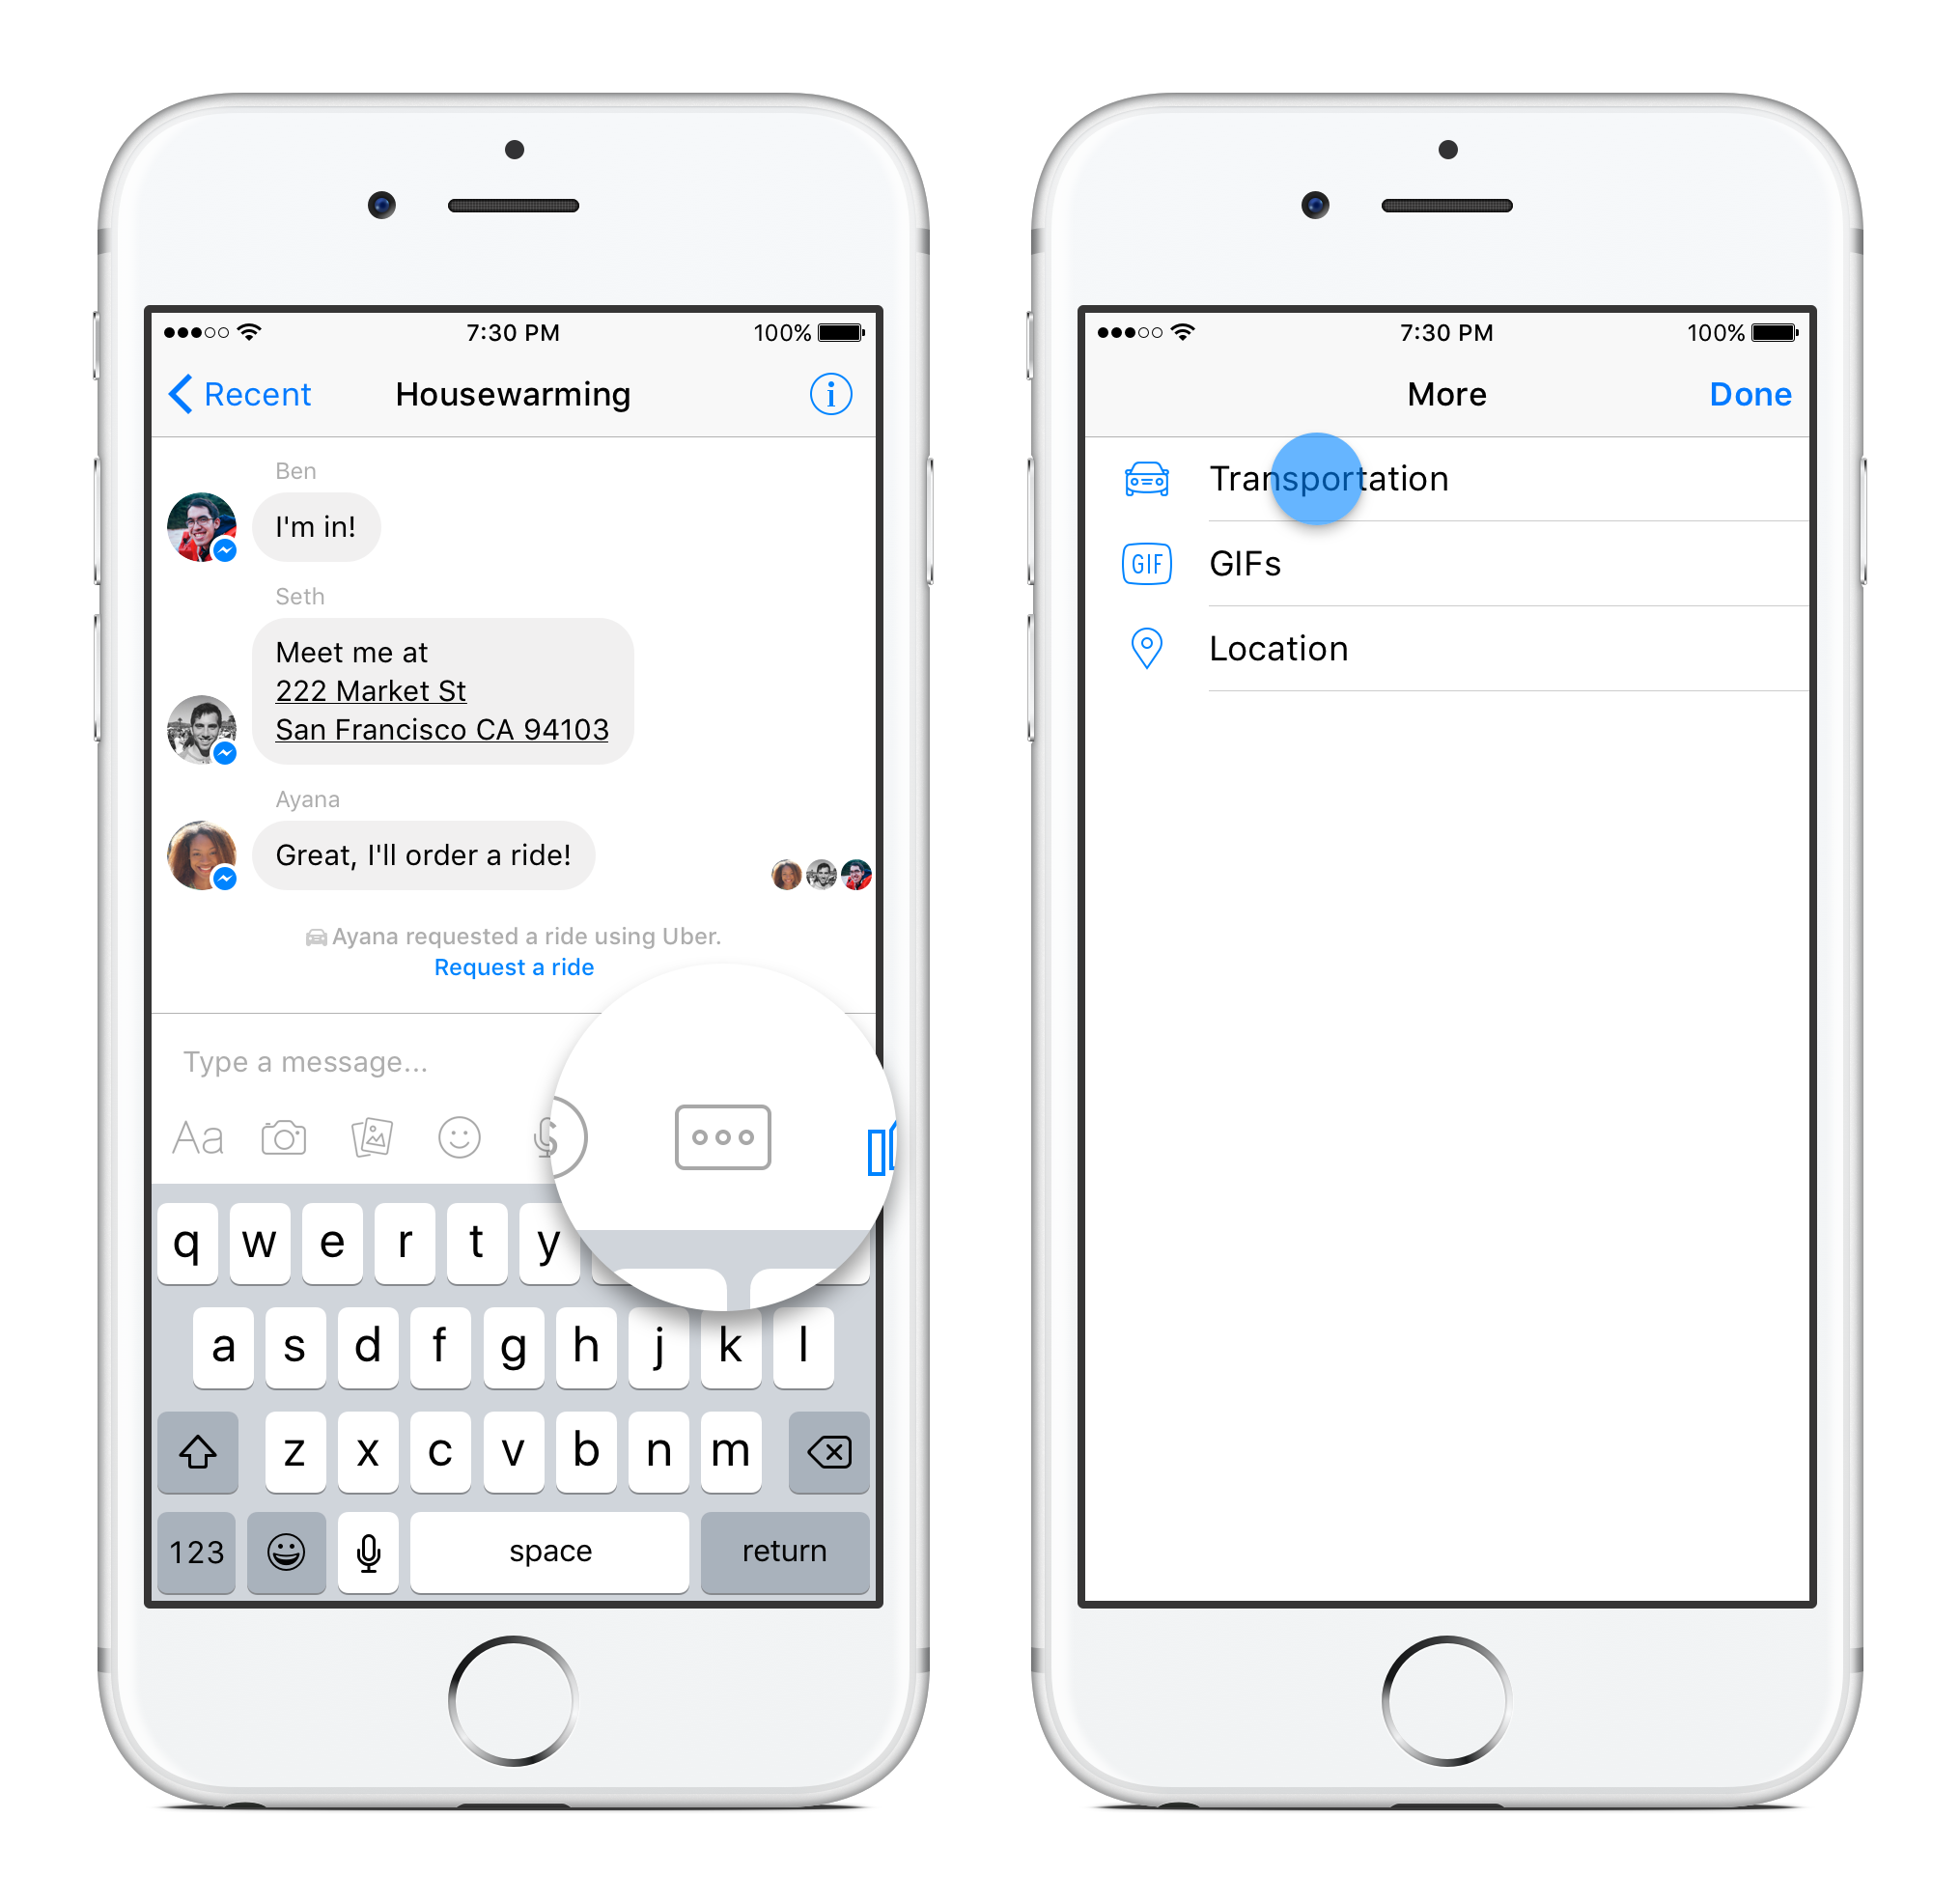 2016 will be the year of conversational commerce - Chris